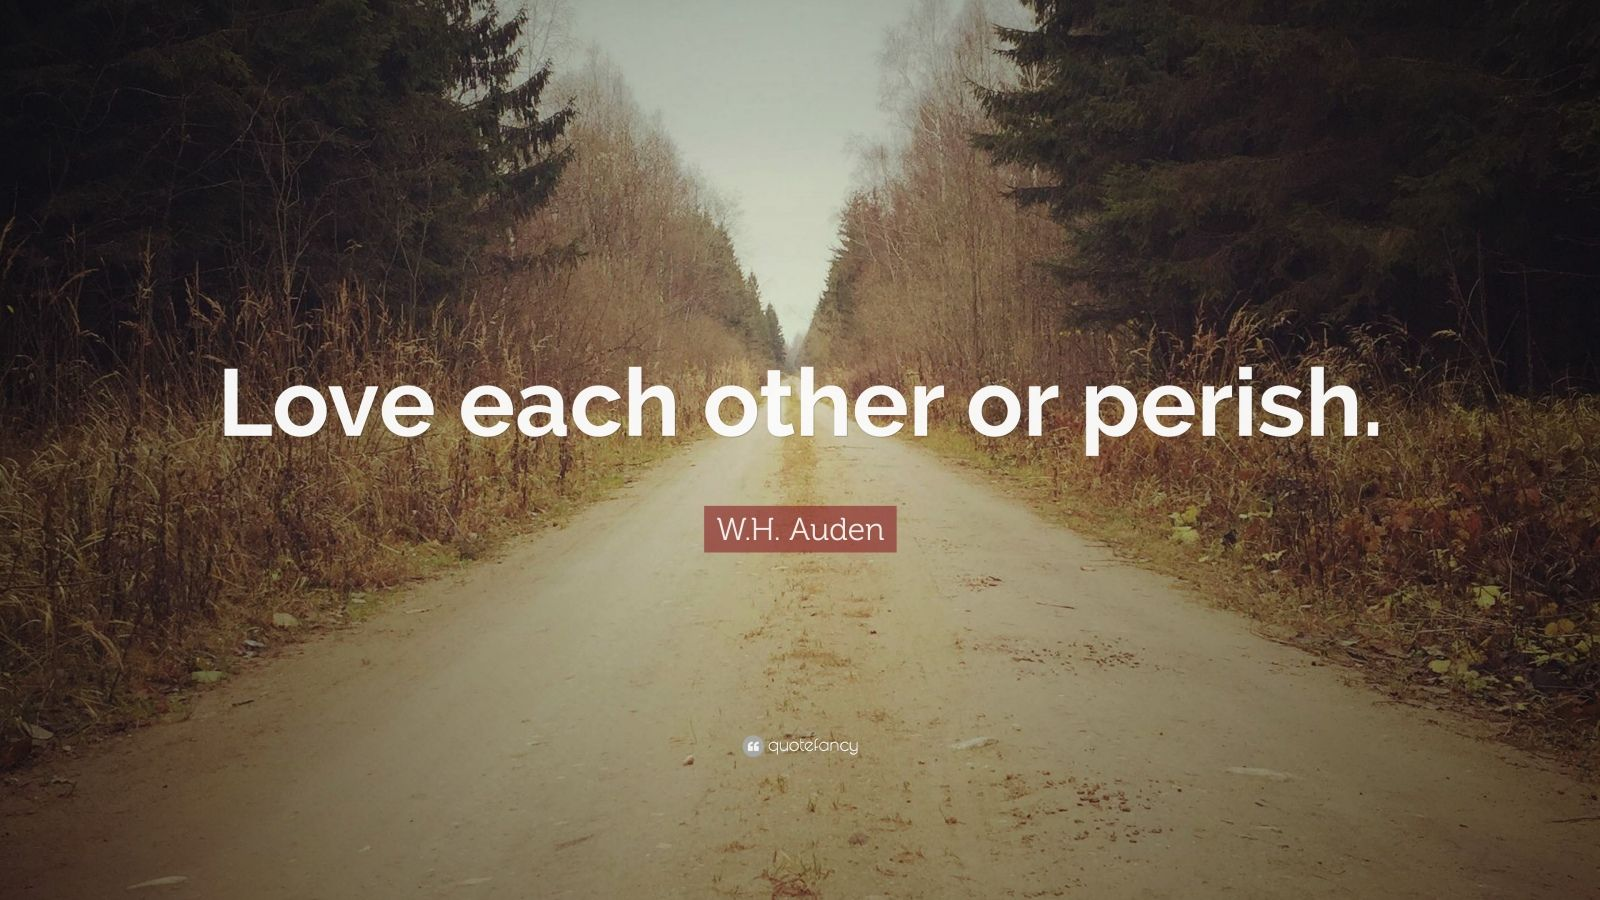 Wallpaper Love Each Other : W.H. Auden Quote: ?Love each other or perish.? (12 wallpapers) - Quotefancy